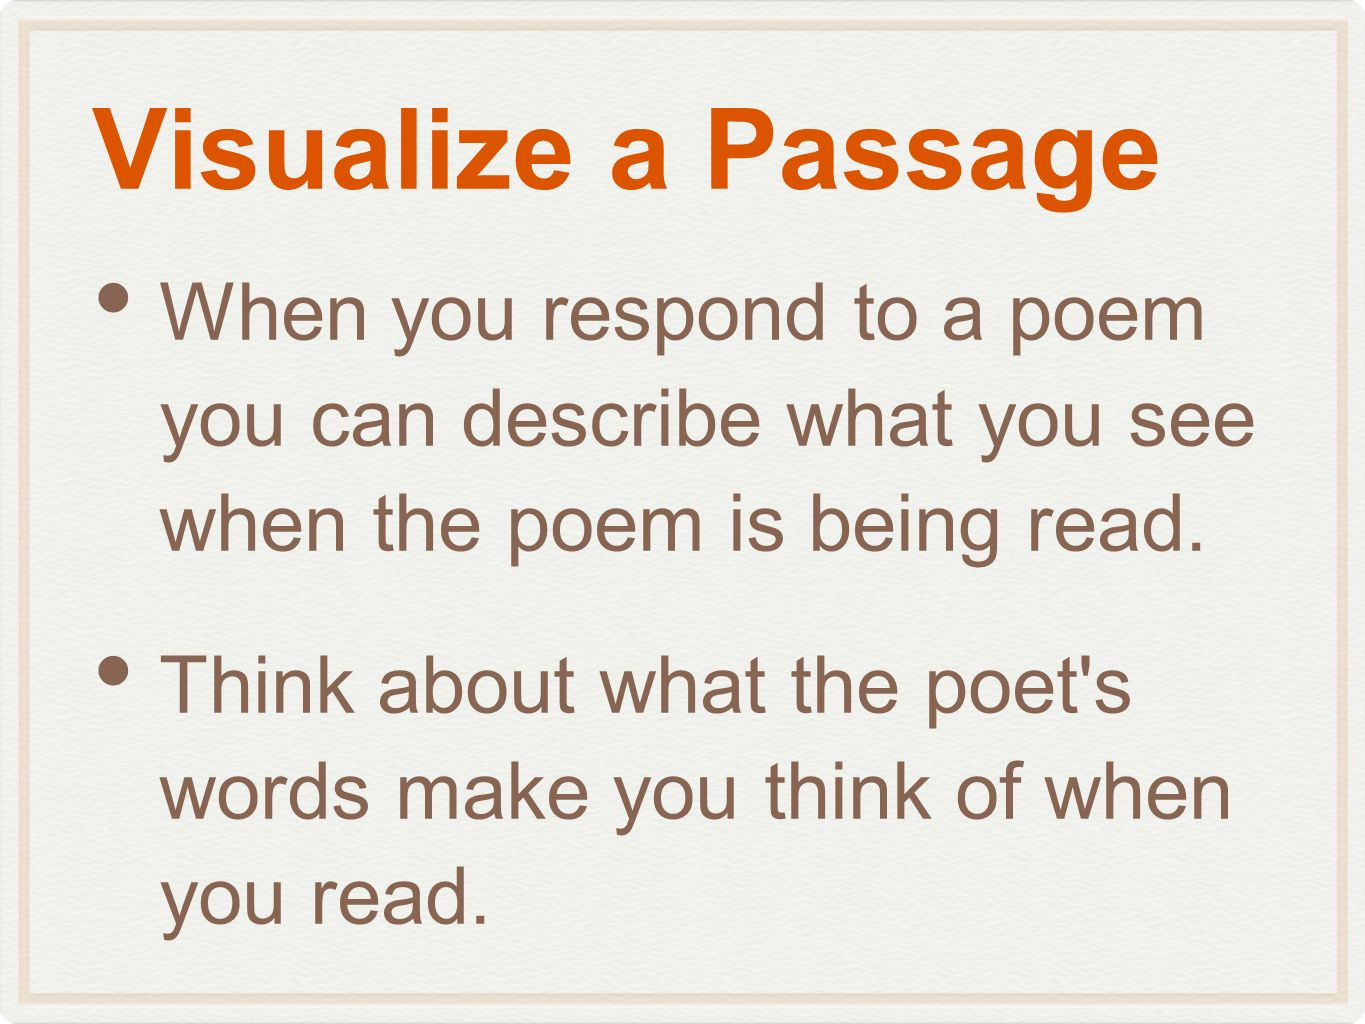 Visualize a Passage When you respond to a poem you can describe what you see when the poem is being read.